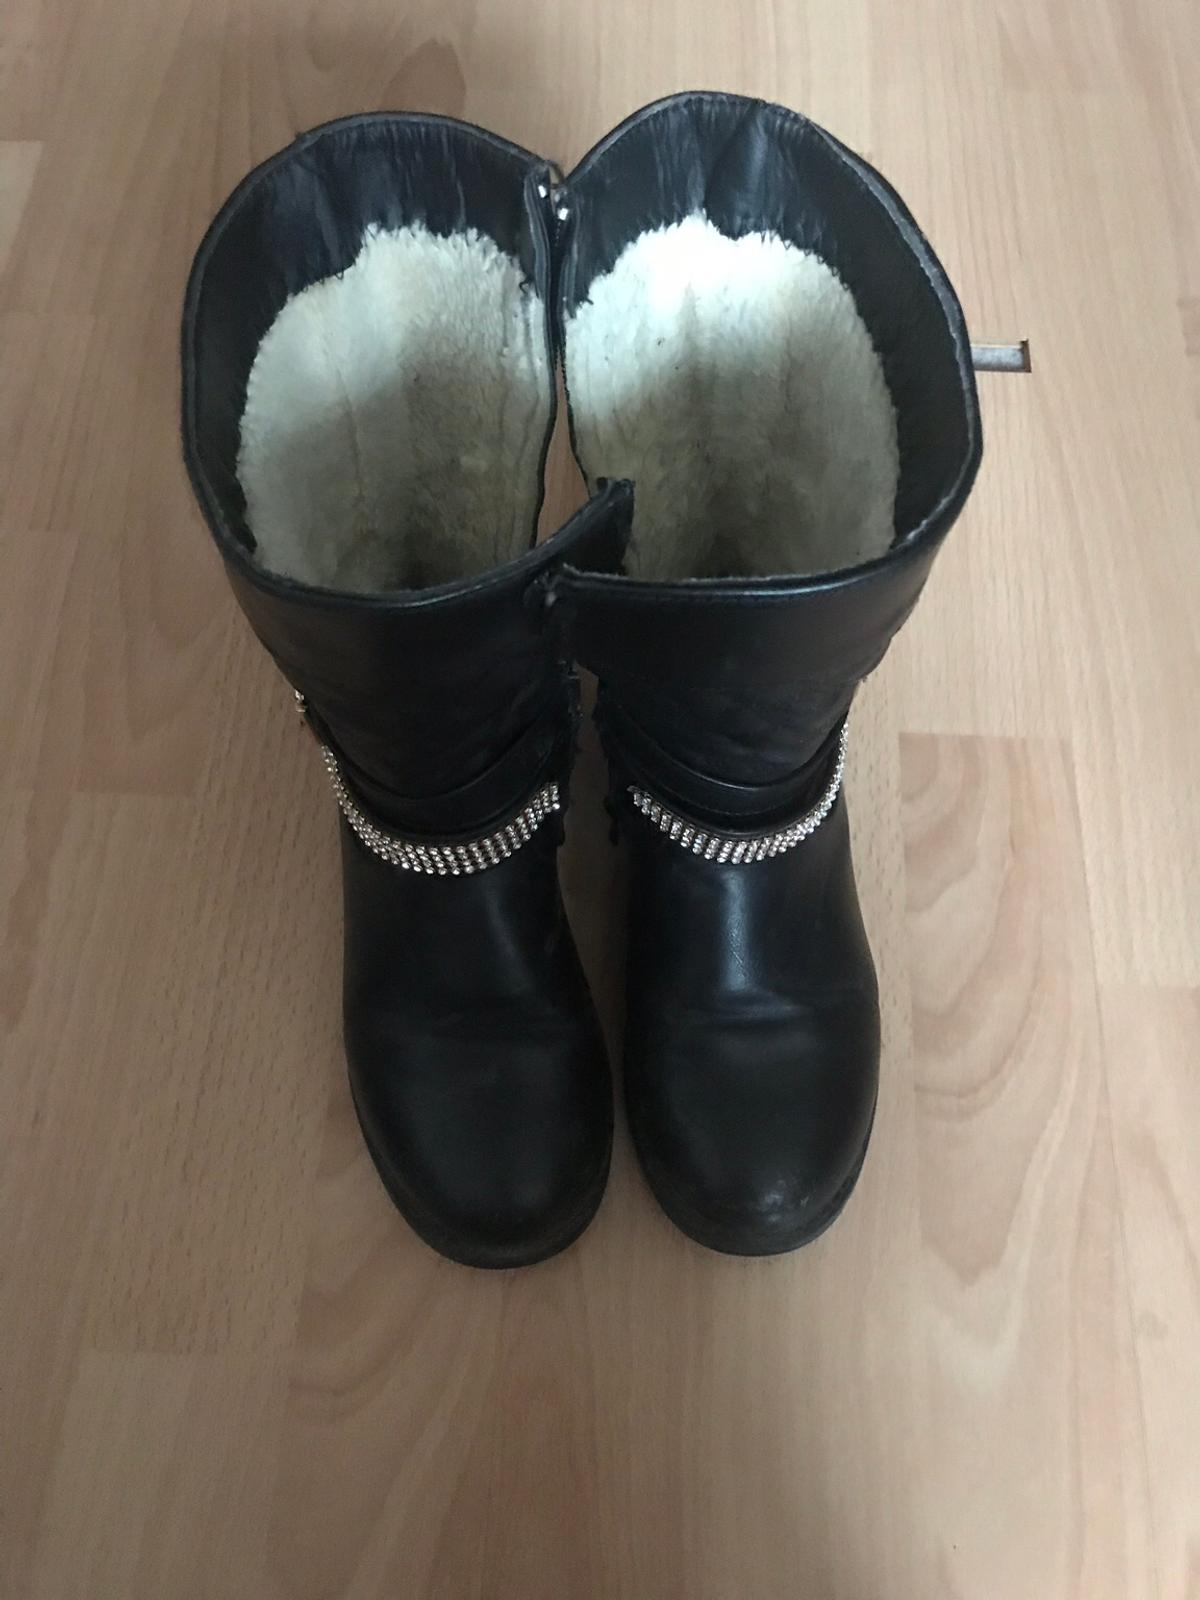 low priced 404e6 363aa Mädchen Stiefel Gr. 32